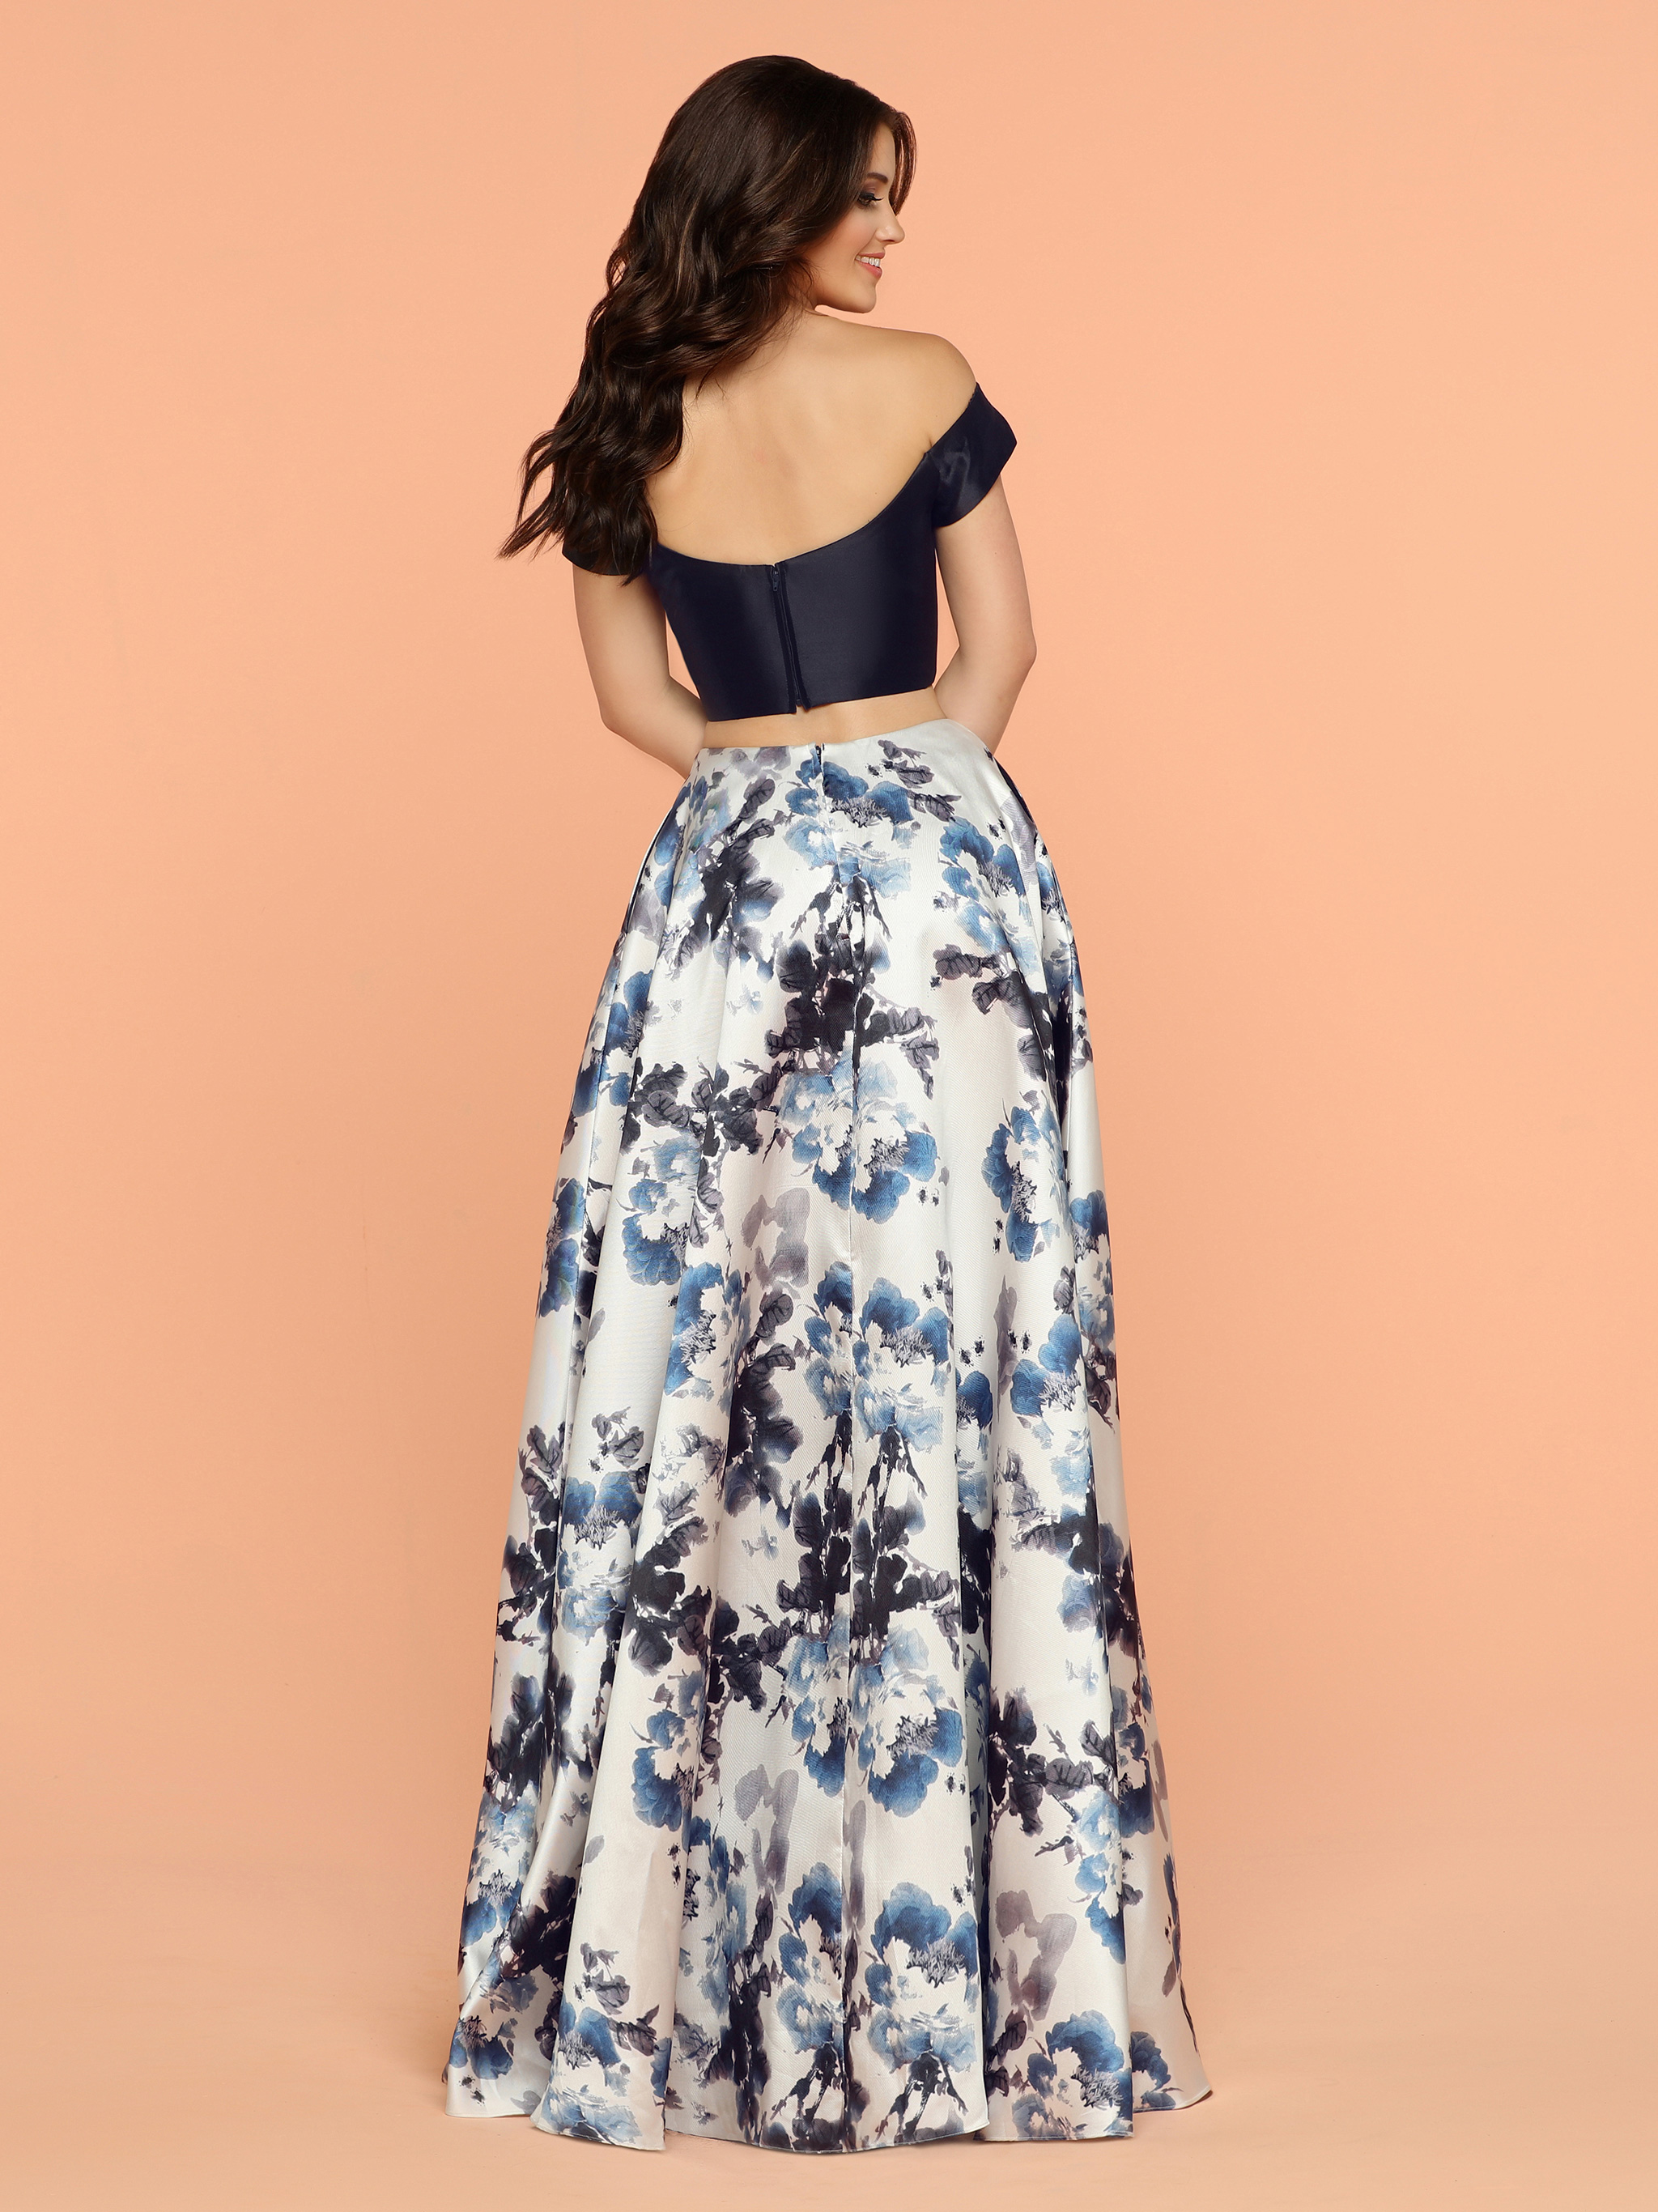 Image showing back view of style #71823